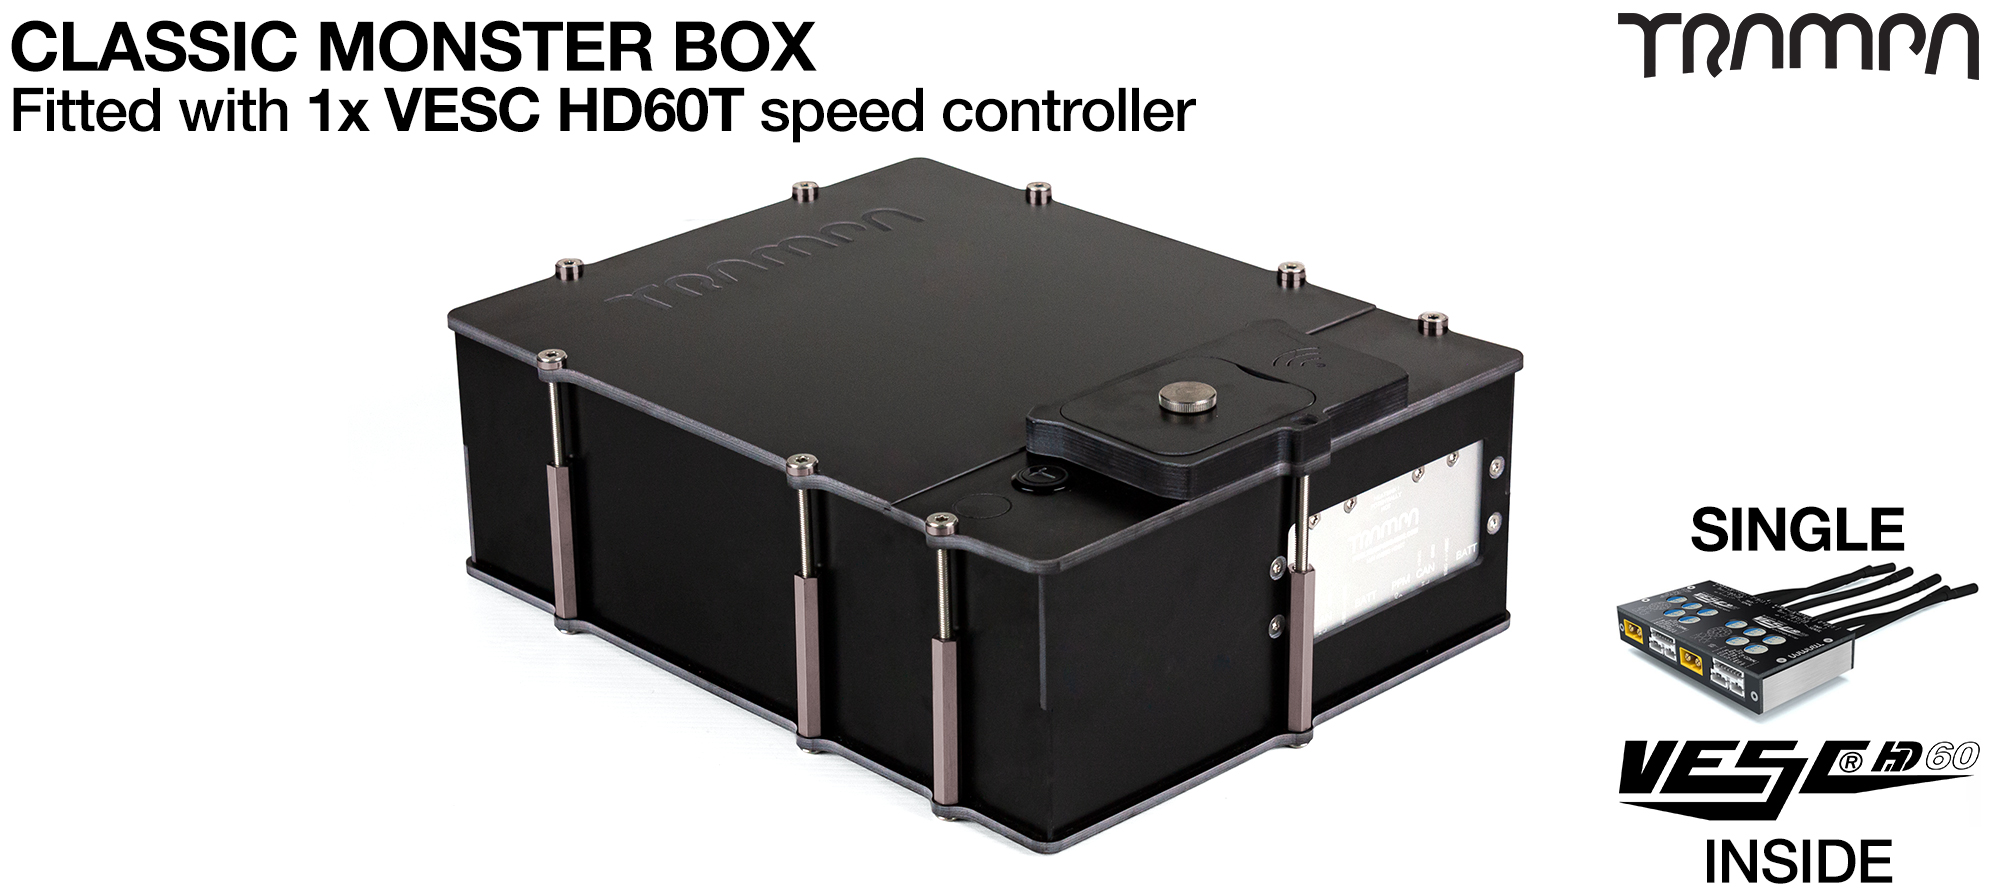 MONSTER Box MkIV supplied with 1x VESC HD-60T for TWIN Motor Power from 1 device Fitted